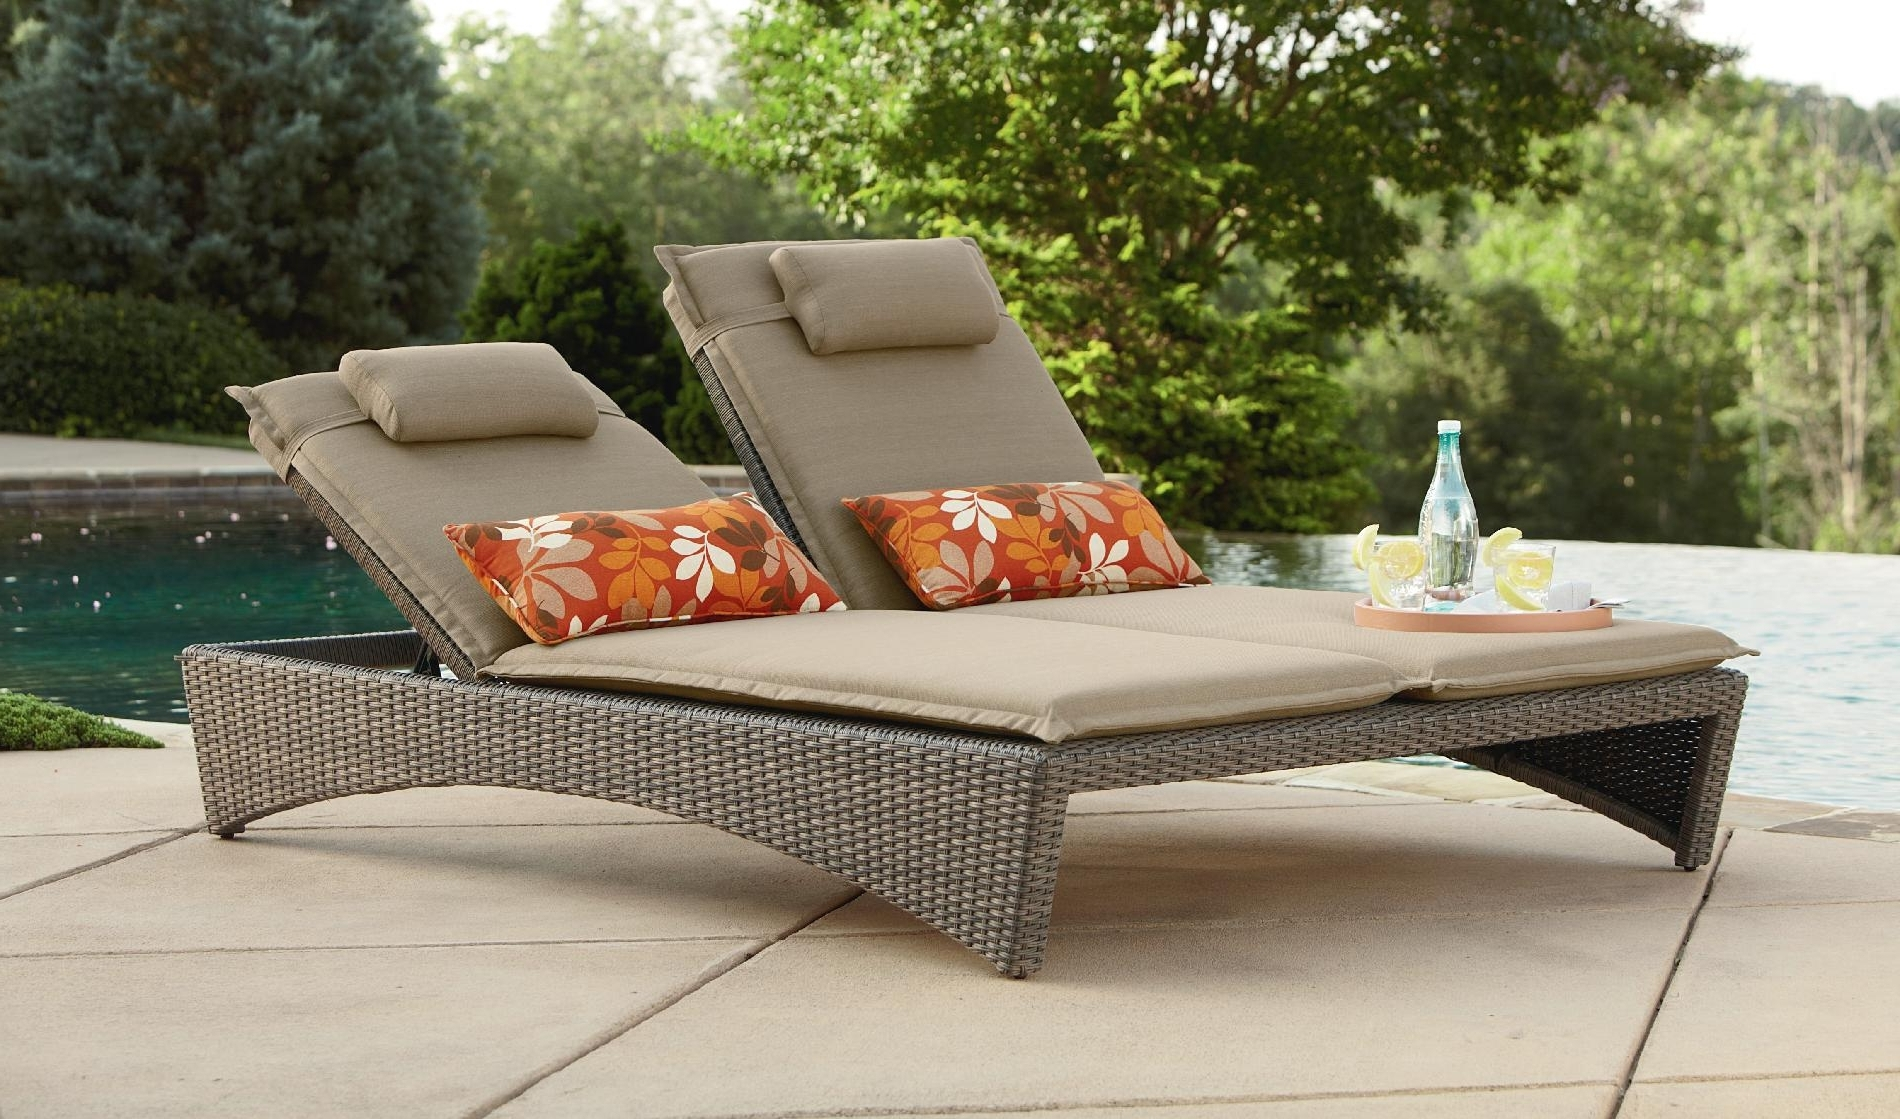 Fashionable Outdoor Pool Chaise Lounge Chairs With Regard To Best Lounge Chair For Pool • Lounge Chairs Ideas (View 11 of 15)